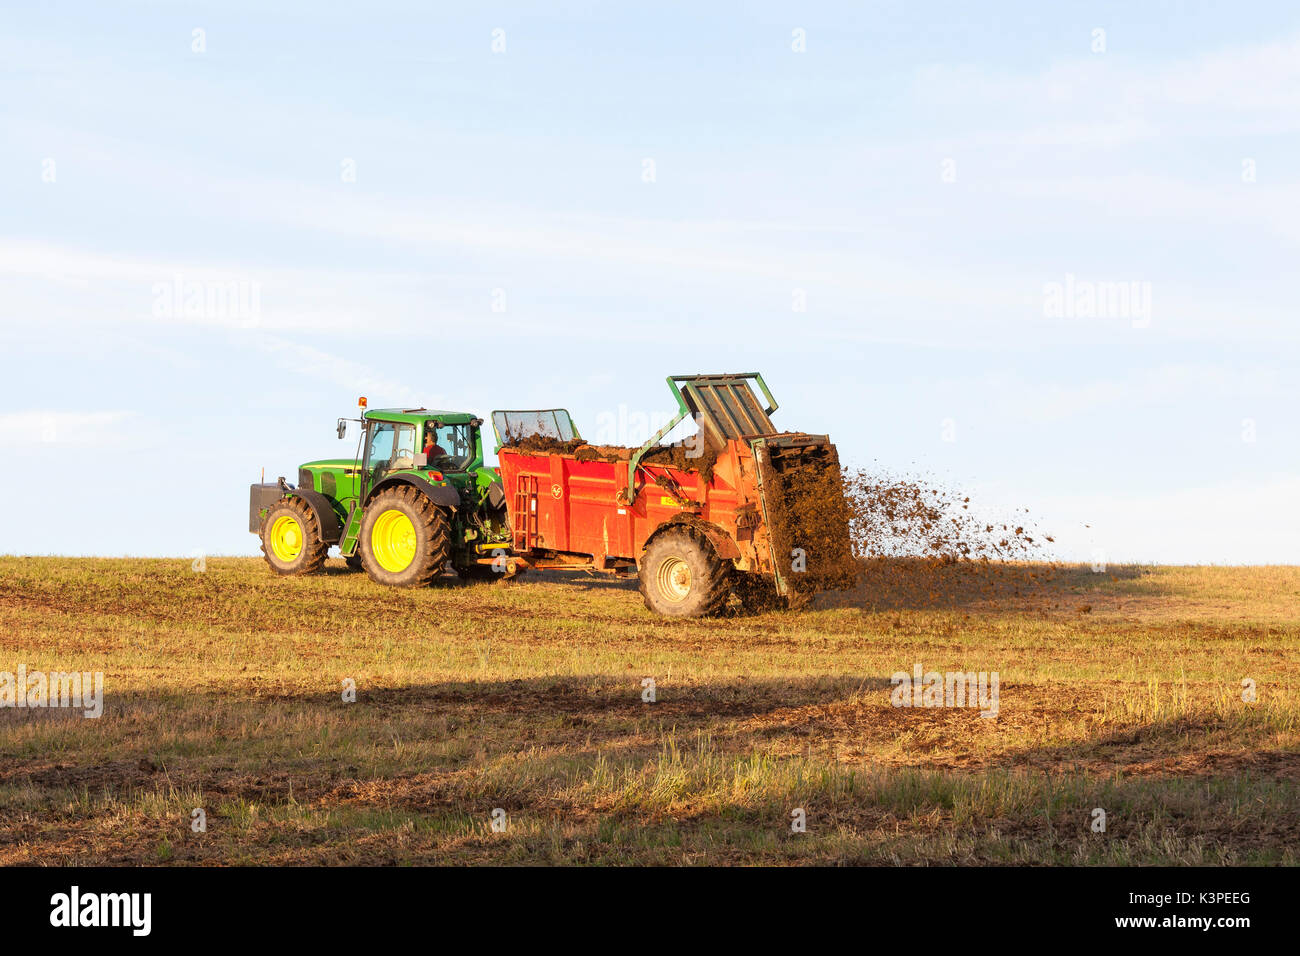 Farmer fertilizing a fallow agricultural field with natural manure using a muck spreader in  golden evening light on the skyline., Dung is spraying ou - Stock Image